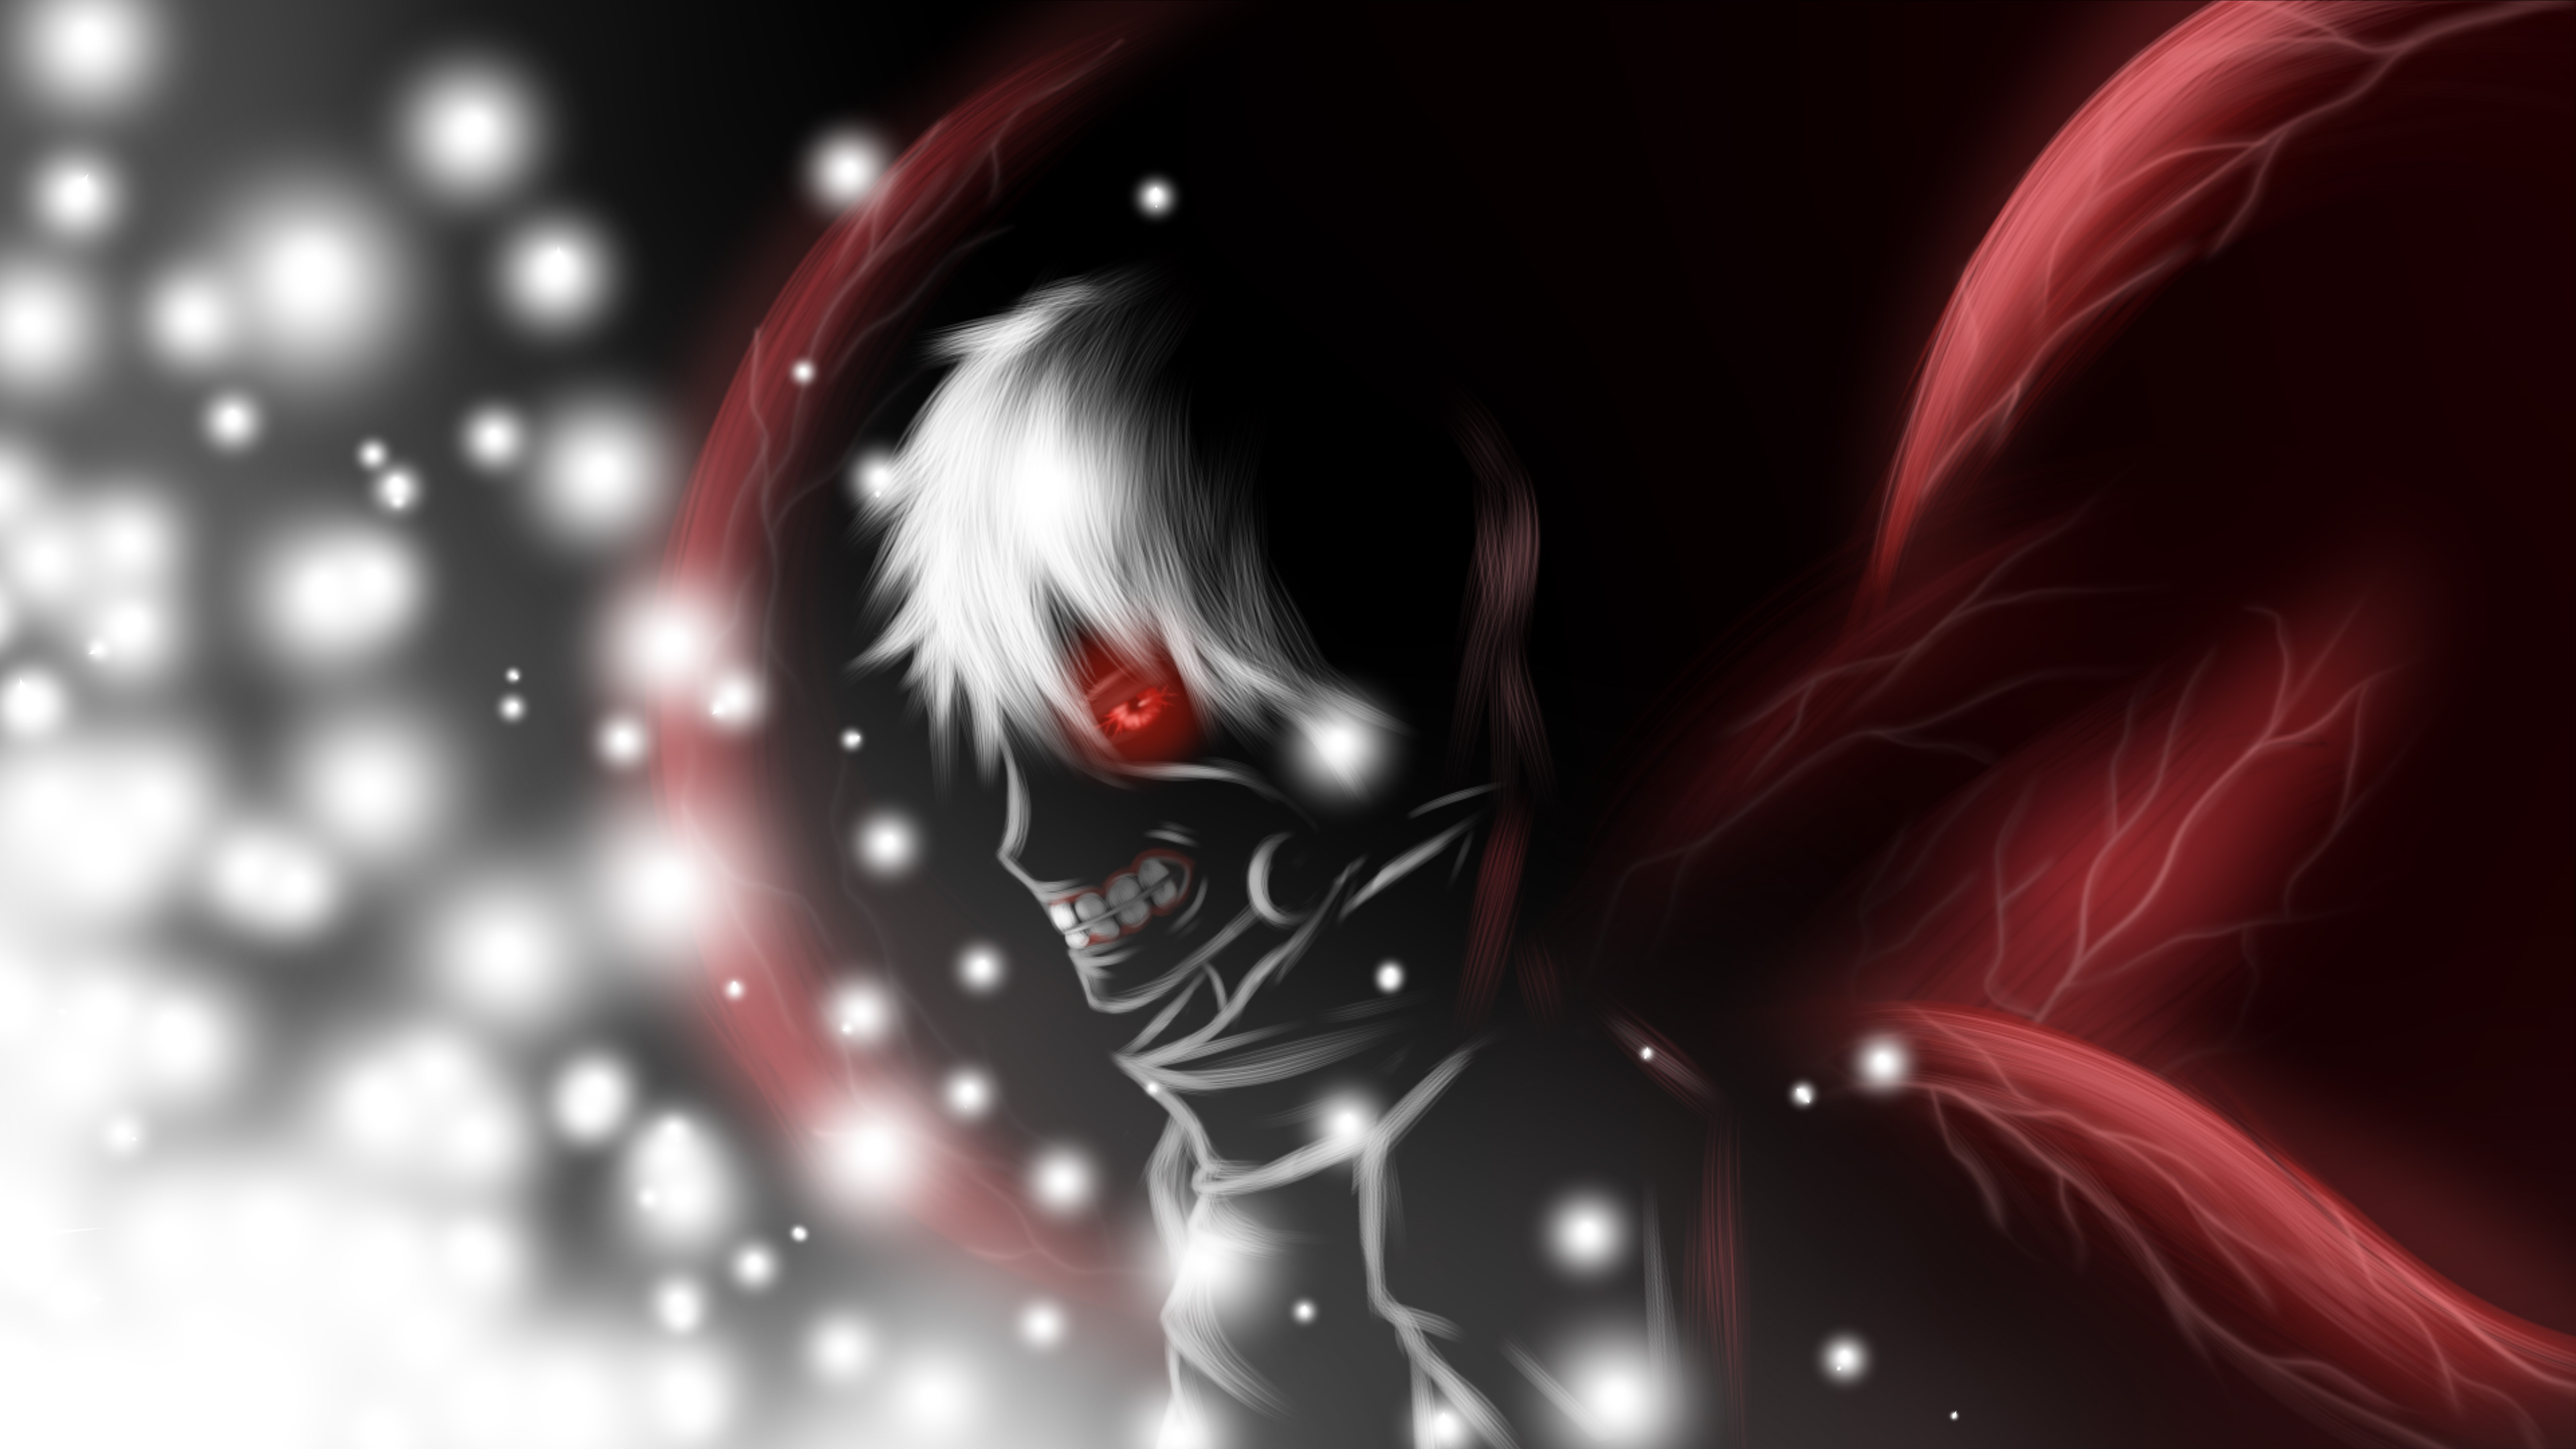 1920x1080 Tokyo Ghoul Ken Kaneki 4k Laptop Full Hd 1080p Hd 4k Wallpapers Images Backgrounds Photos And Pictures